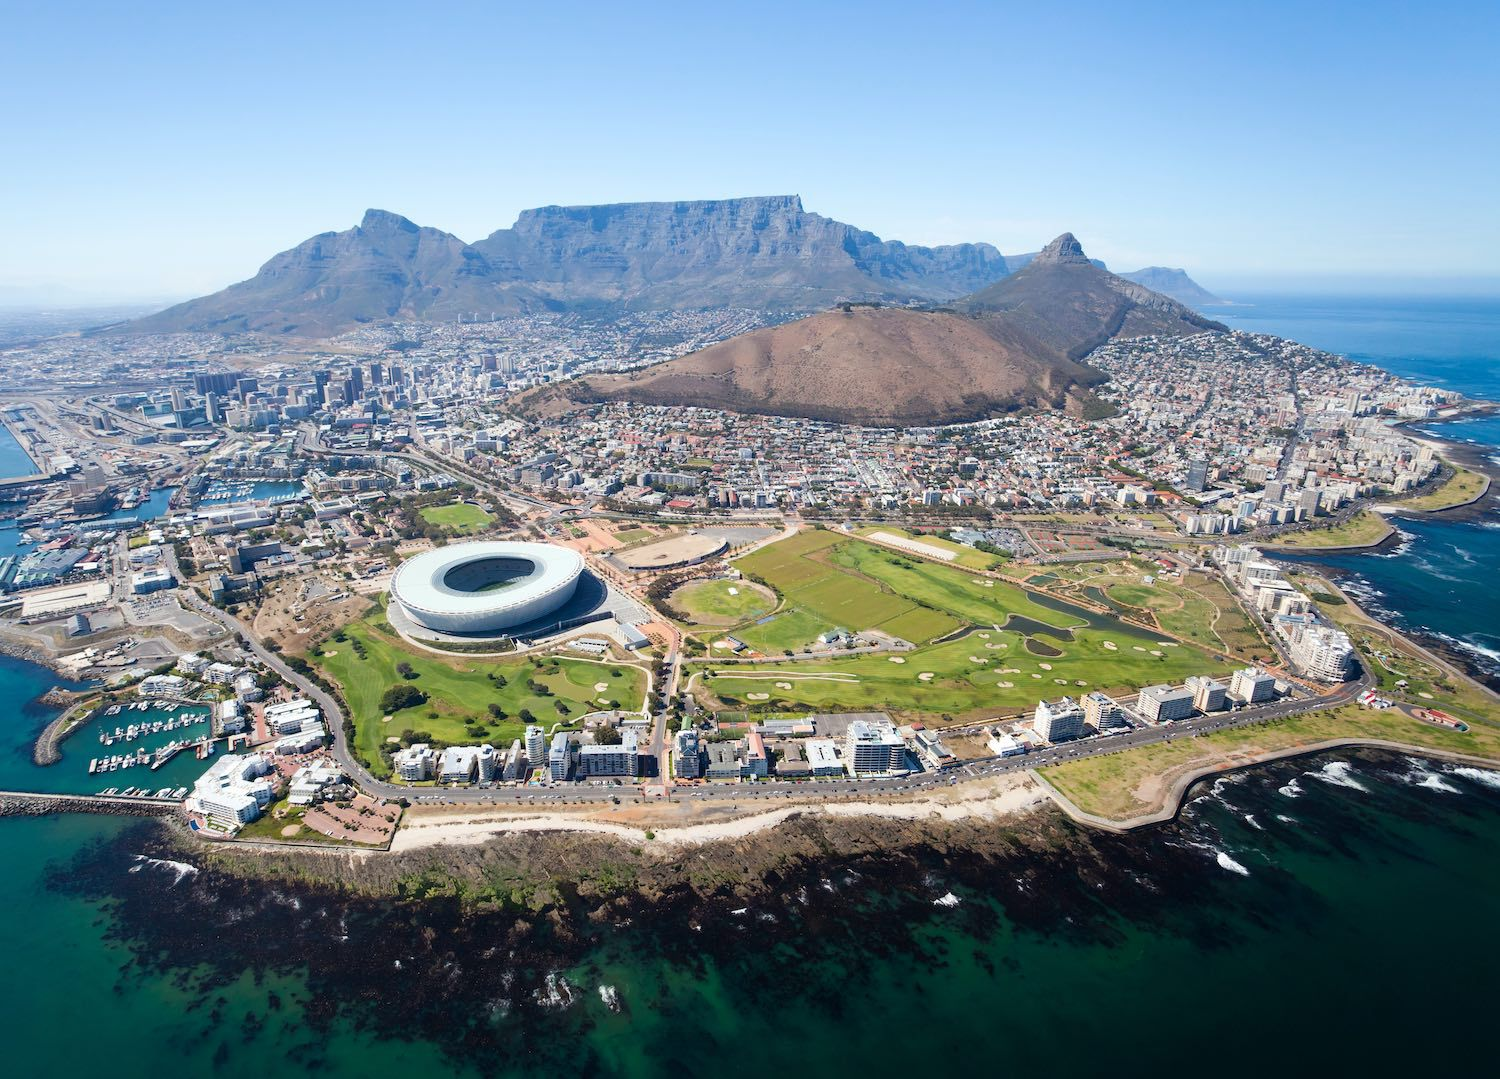 Cape Town, South Africa | Where is hot in February